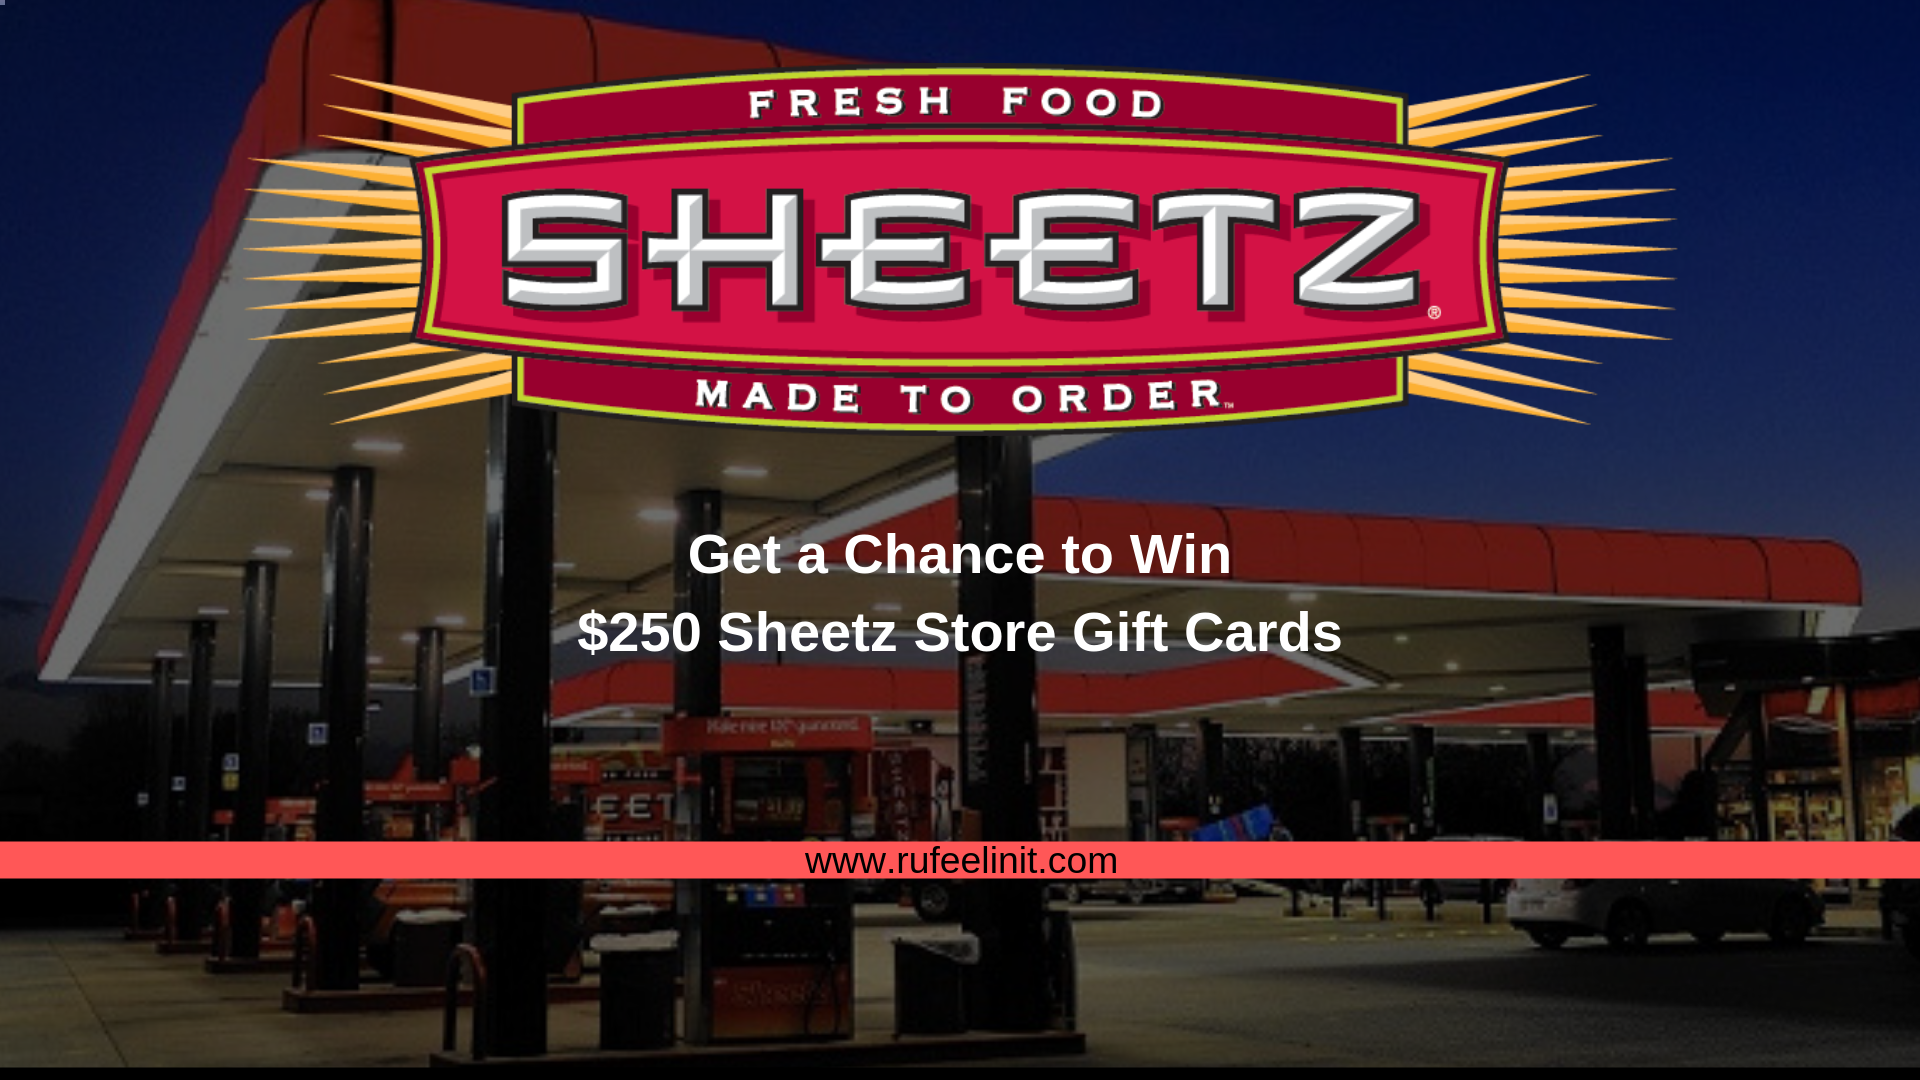 Rufeelinit | Get a Chance to Win $250 Sheetz Store Gift Cards